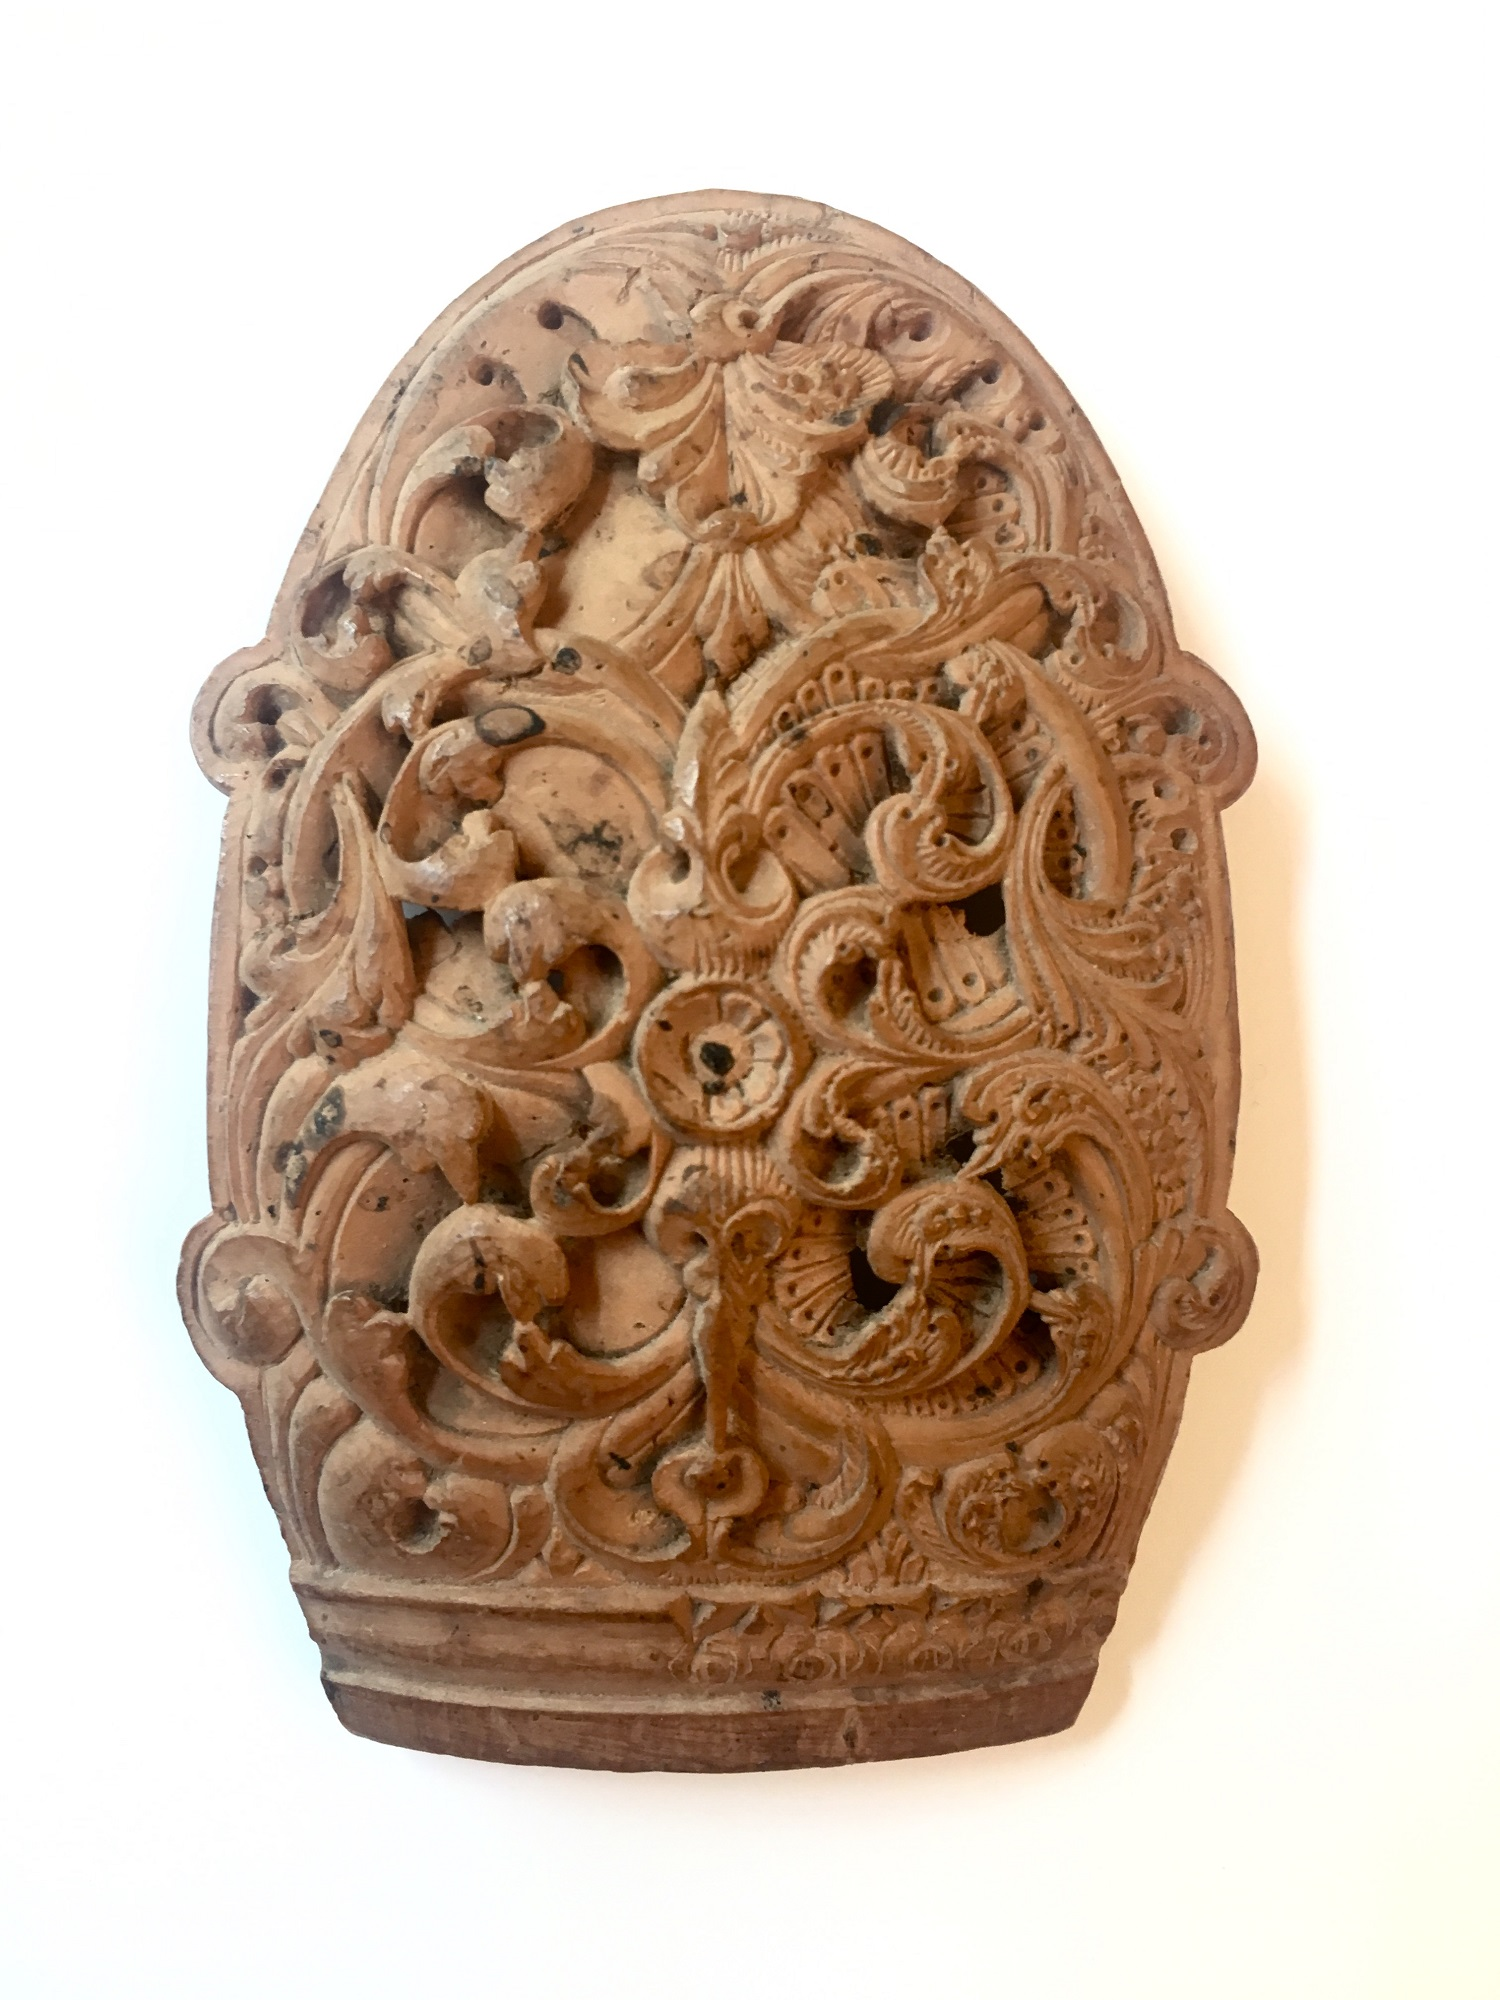 A coconut curved plaque, carved with interweaving scrolling foliage